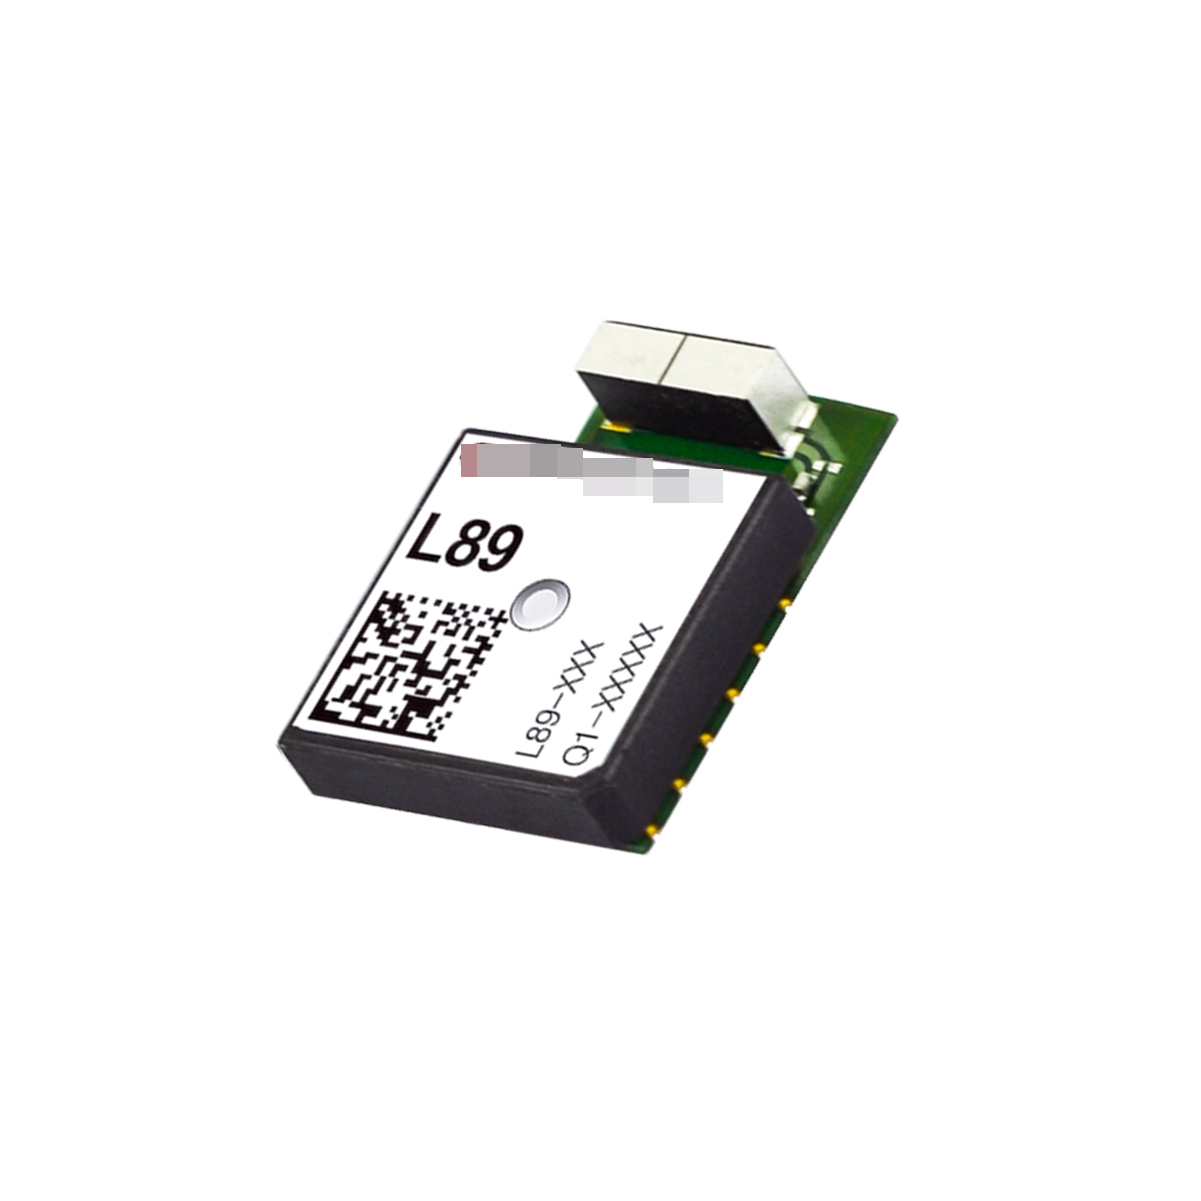 L89 GNSS Module L89-S90 GPS Module GNSS Antenna Multi-GNSS Engine For GPS, GLONASS, Galileo And QZSS